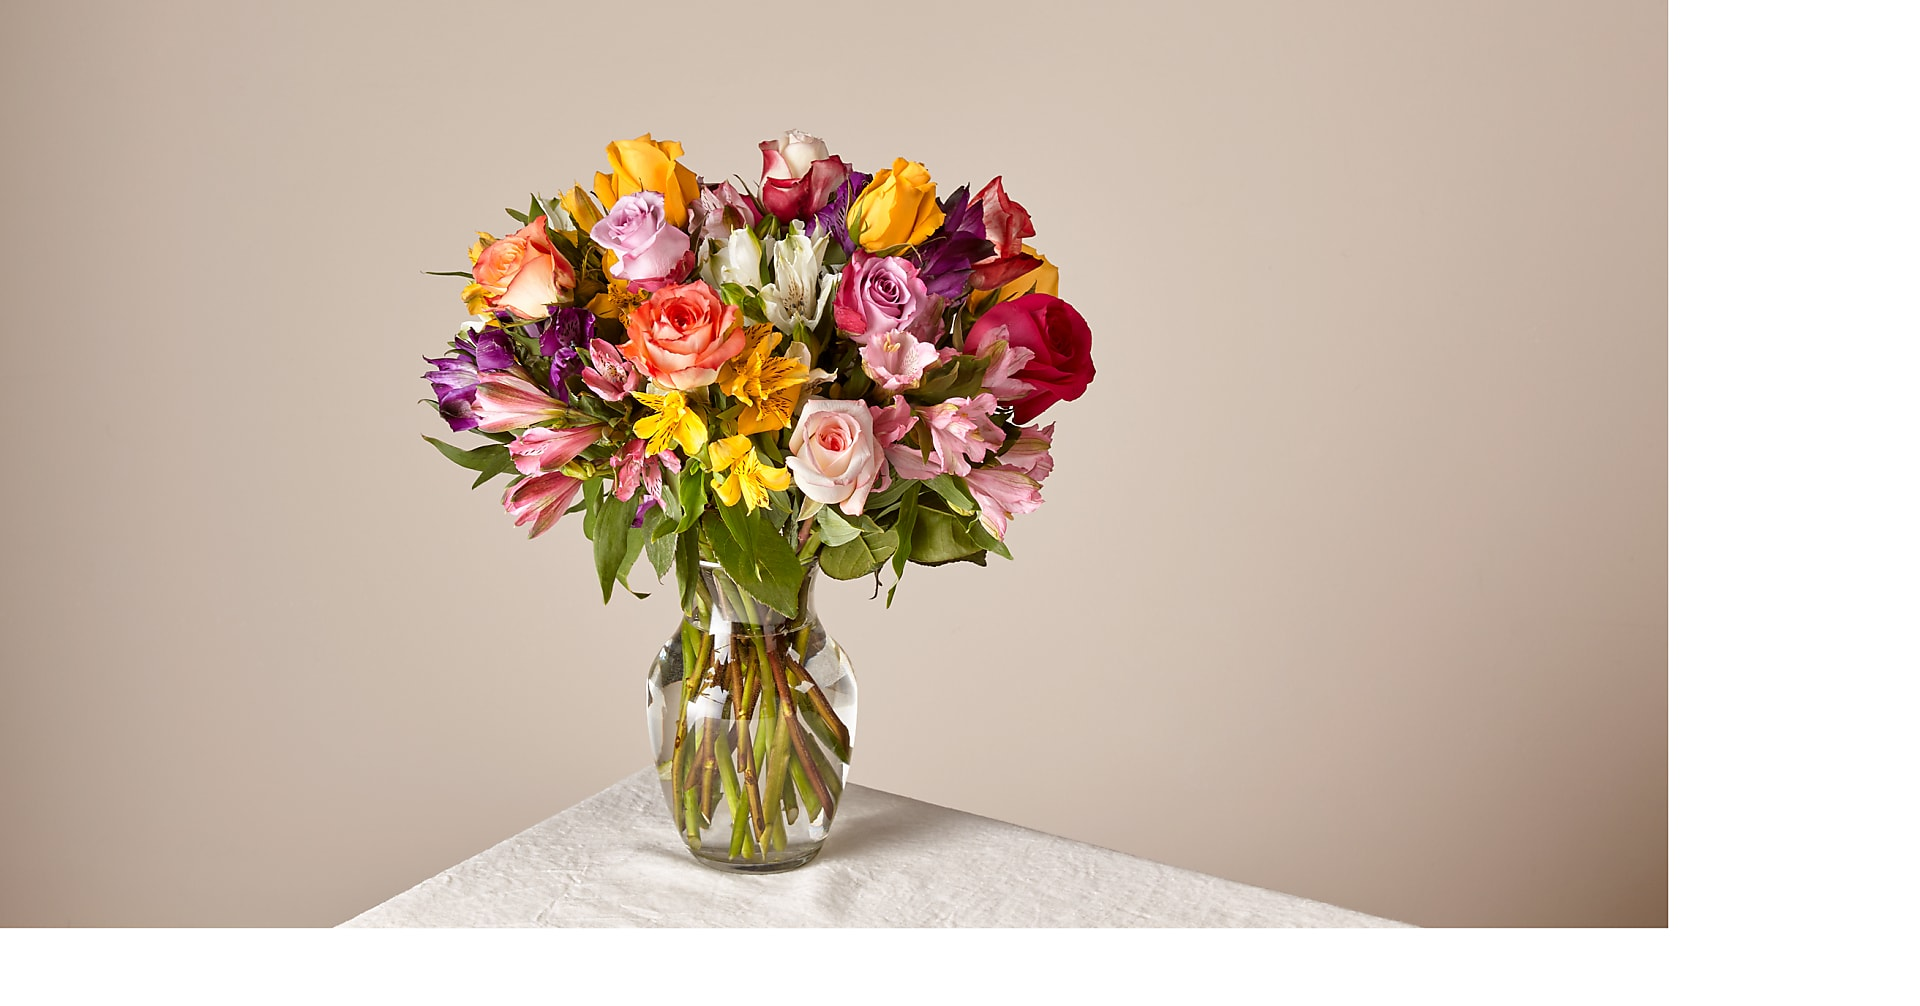 Deluxe Smiles & Sunshine with Vase - Image 1 Of 2